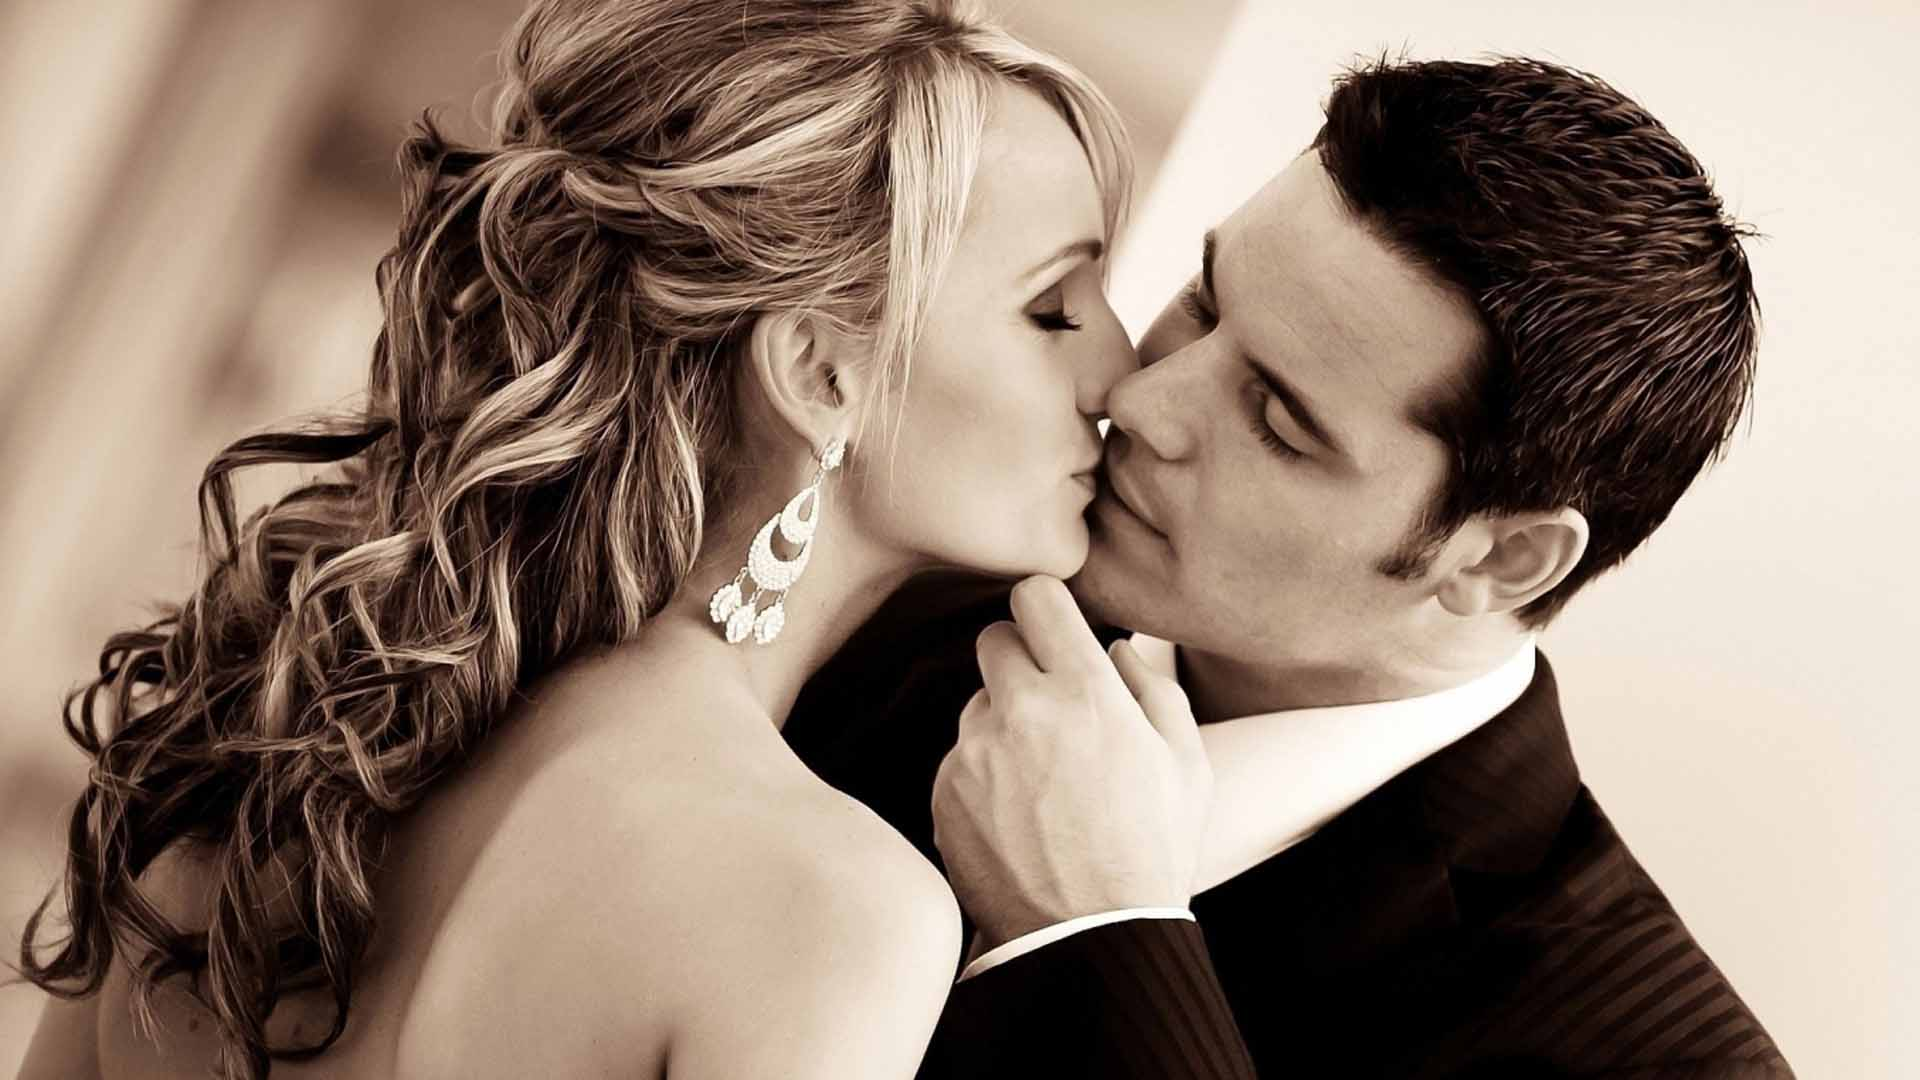 Kissing Couple Wallpapers, Pictures, Images